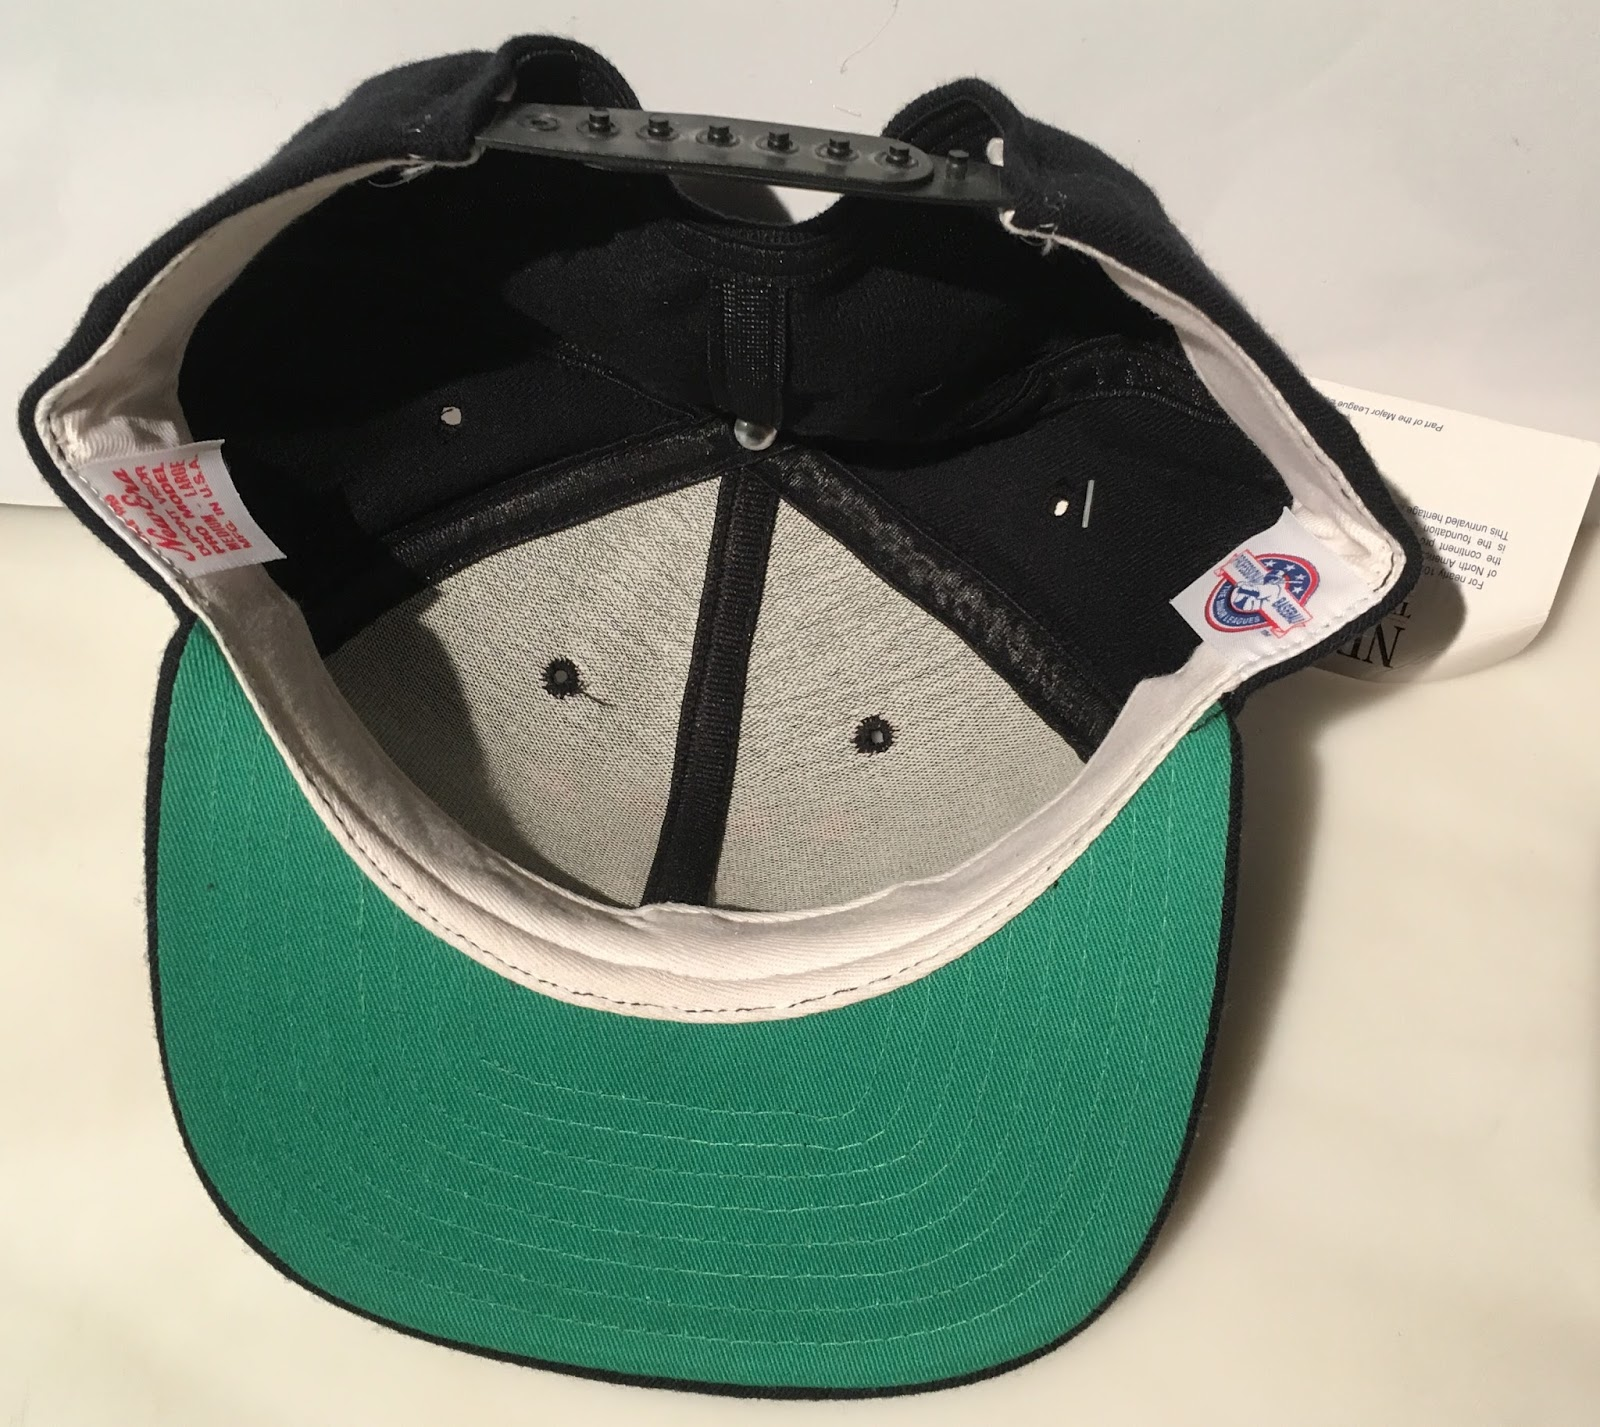 52f581b9 The Generals switched to grey underbrims in 1994, so this hat is from  somewhere between 1991 and 1993. I doubt a fitted version of this cap  exists but you ...